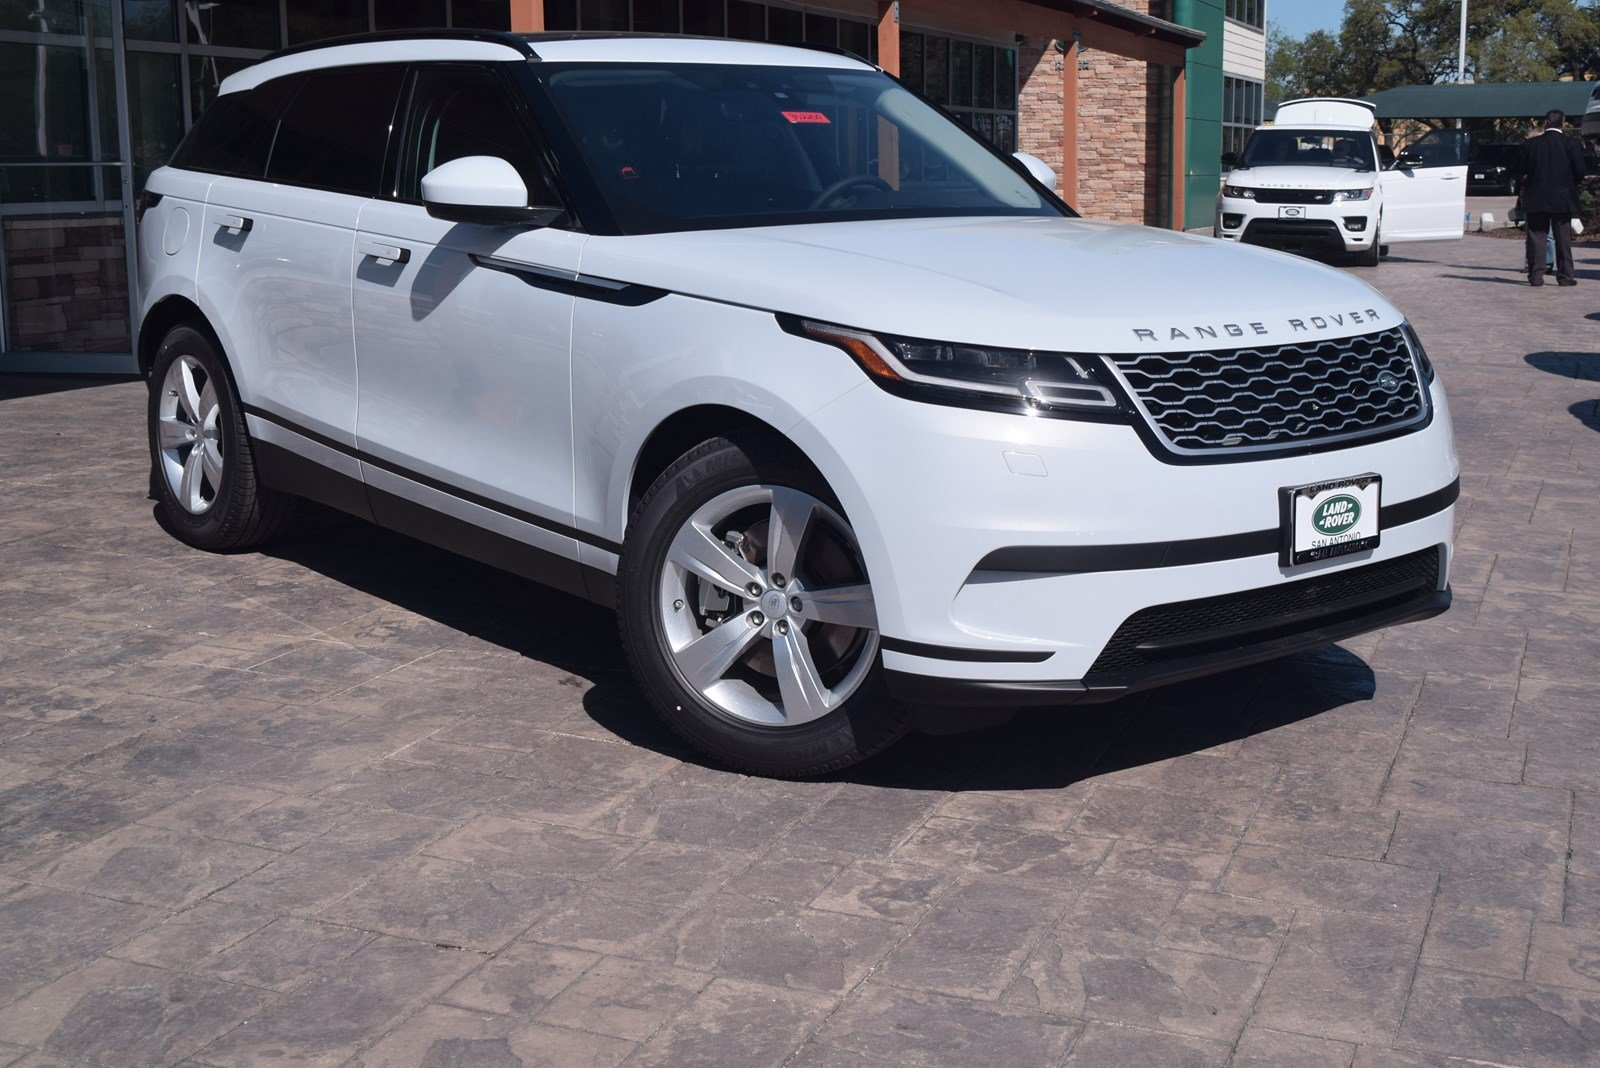 2018 Land Rover Range Rover Velar S With Navigation & 4WD